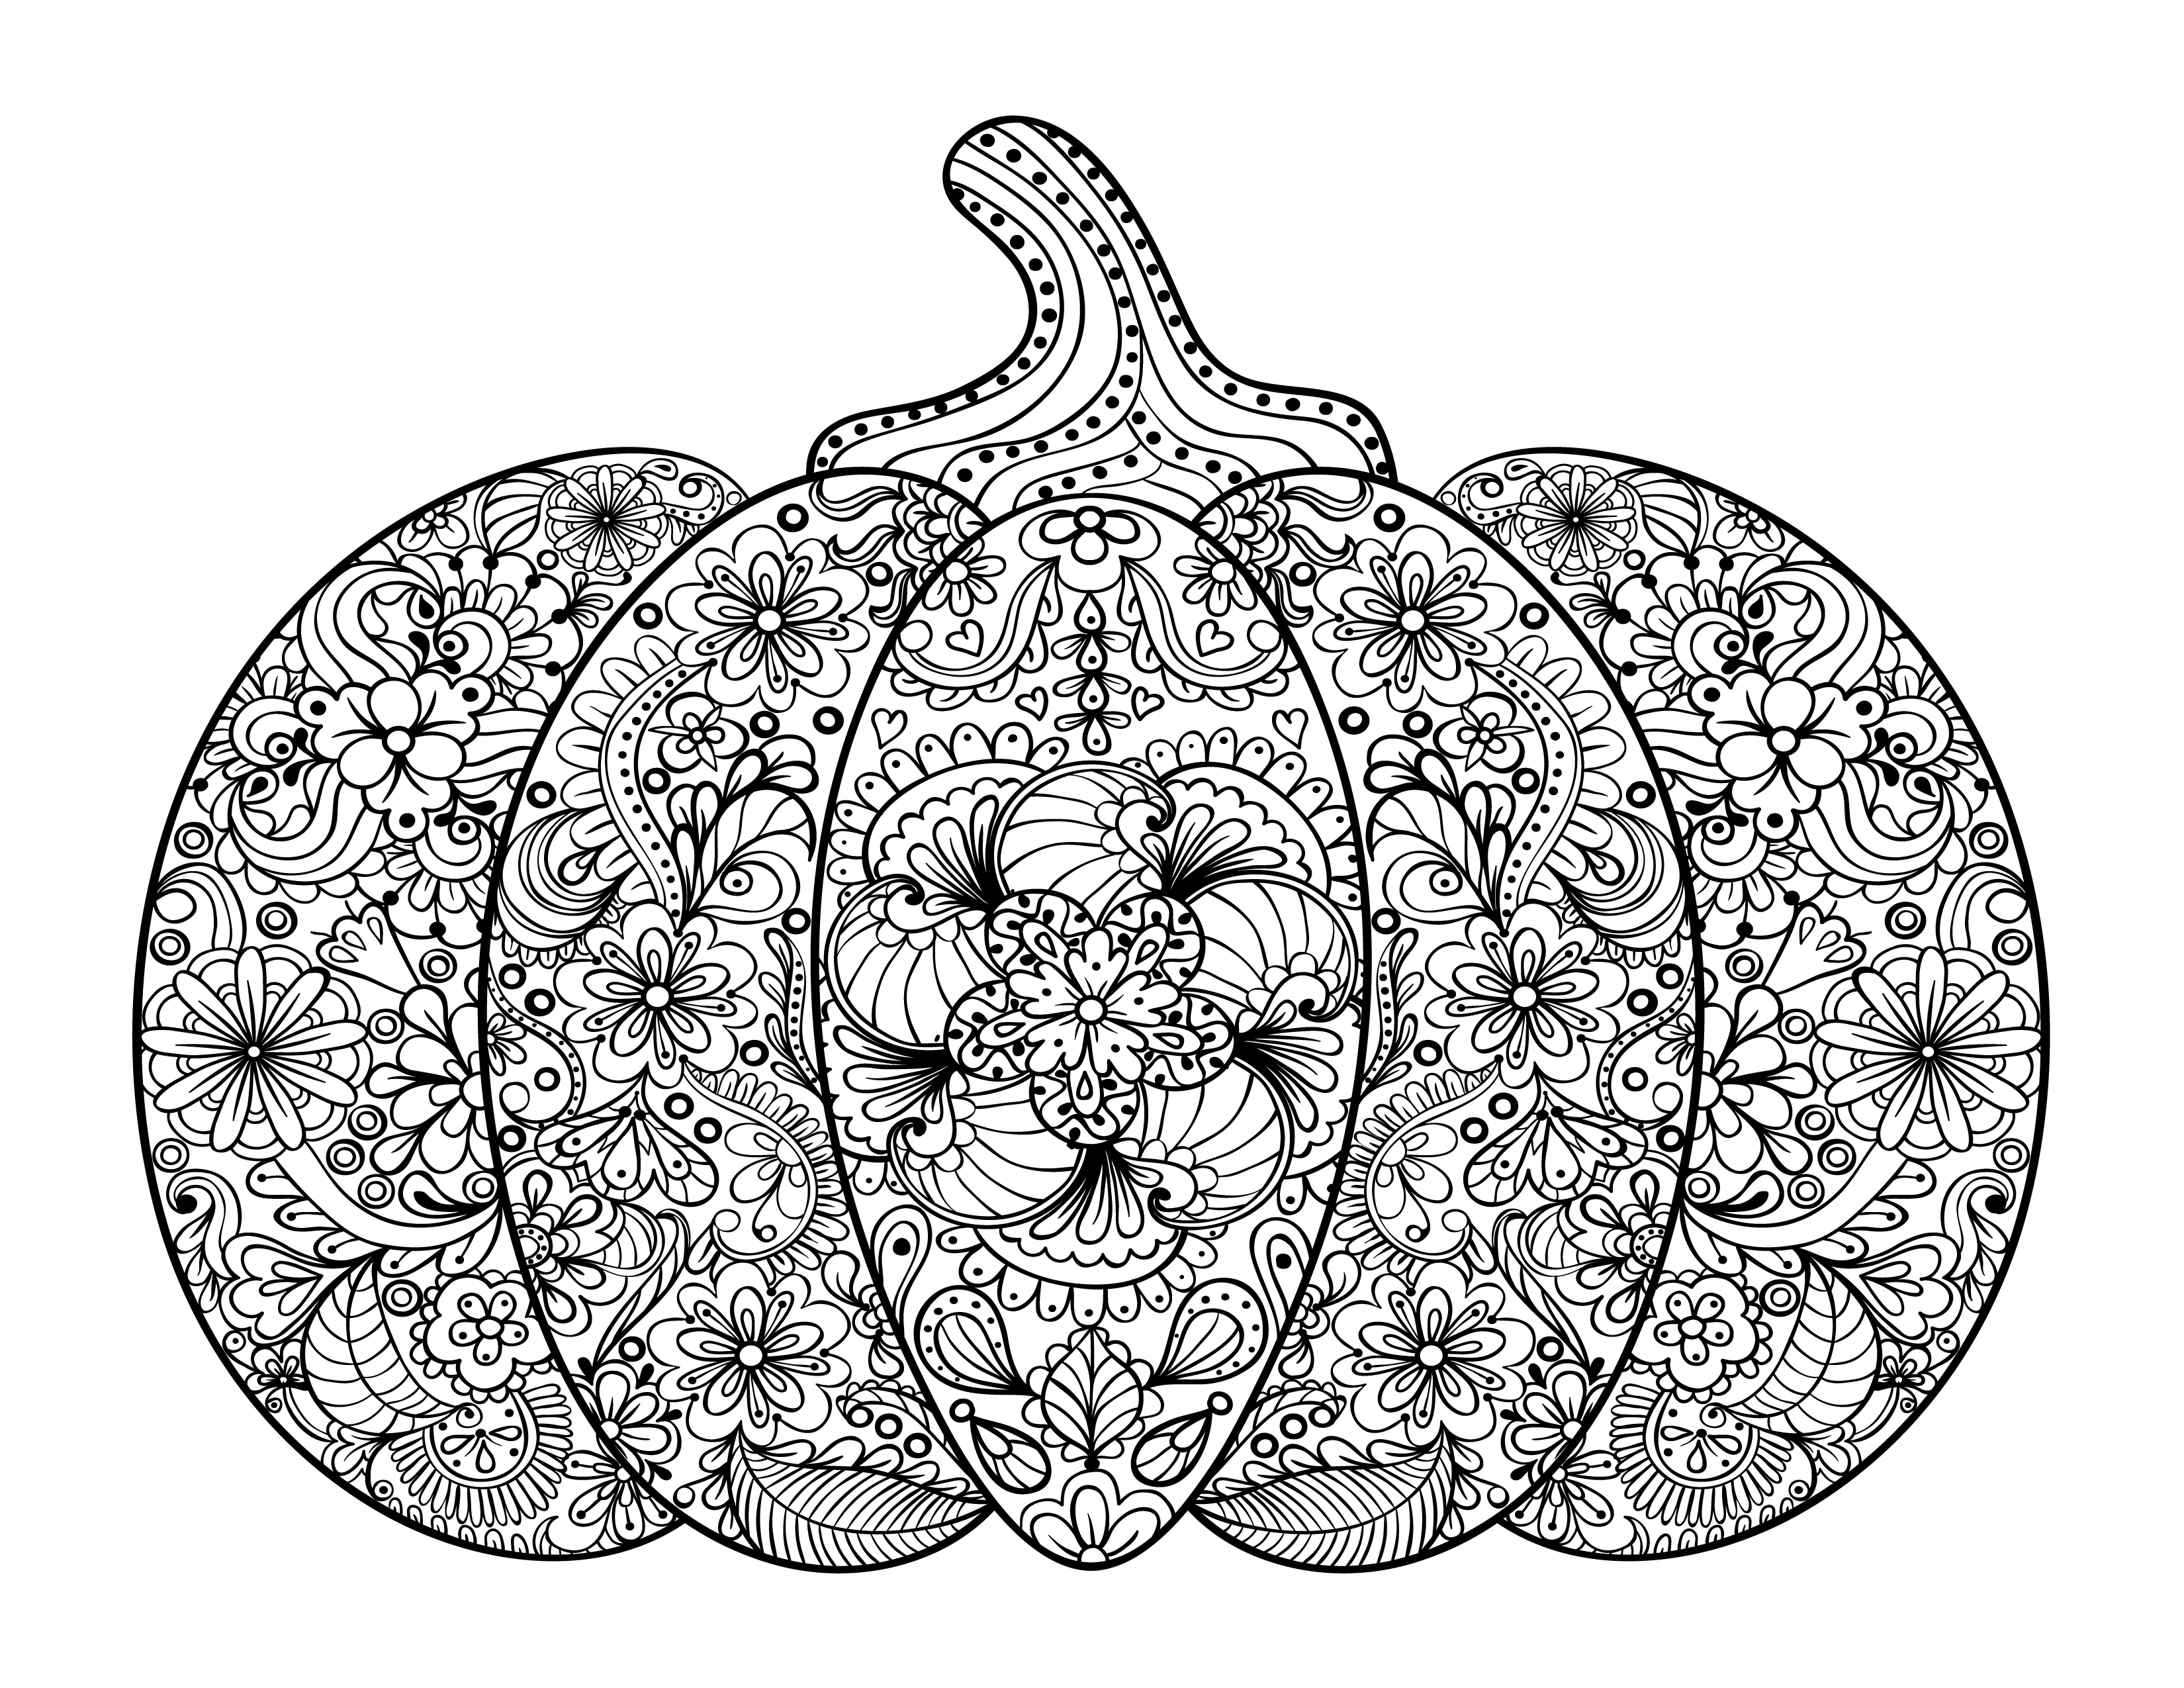 coloring page of a pumpkin free adult coloring pages pumpkin delight free pretty page of a pumpkin coloring